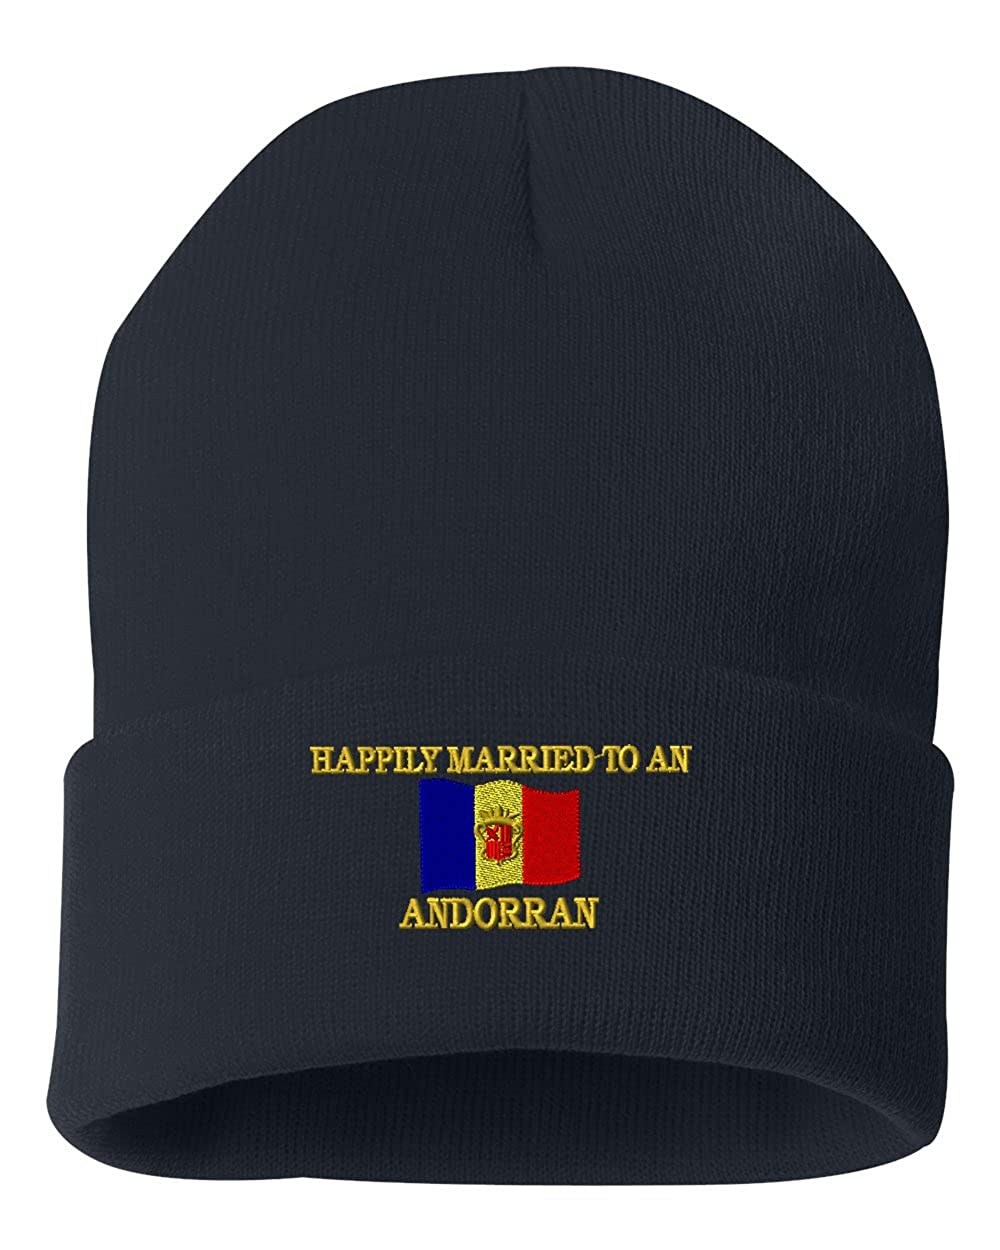 HAPPLY MARRIED TO AN ANDORRAN Custom Personalized Embroidery Embroidered Beanie